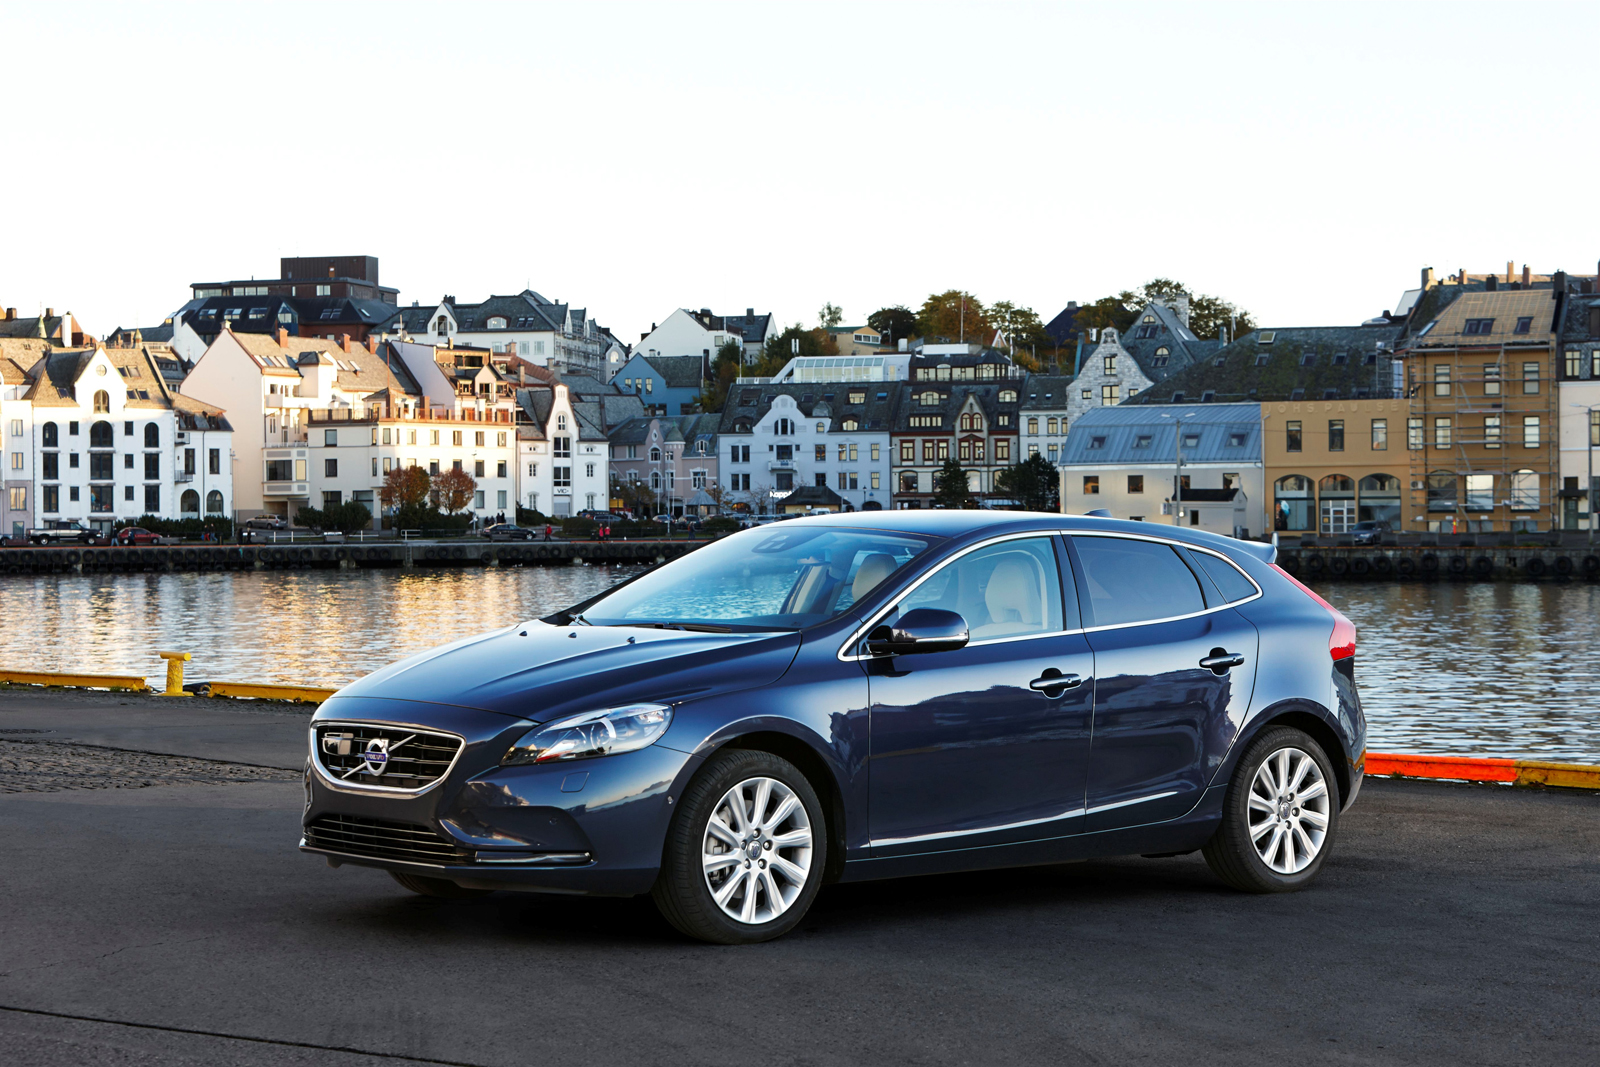 Volvo Introduces Powerful and Efficient New Engines for V40 D4 and T5 Models - autoevolution